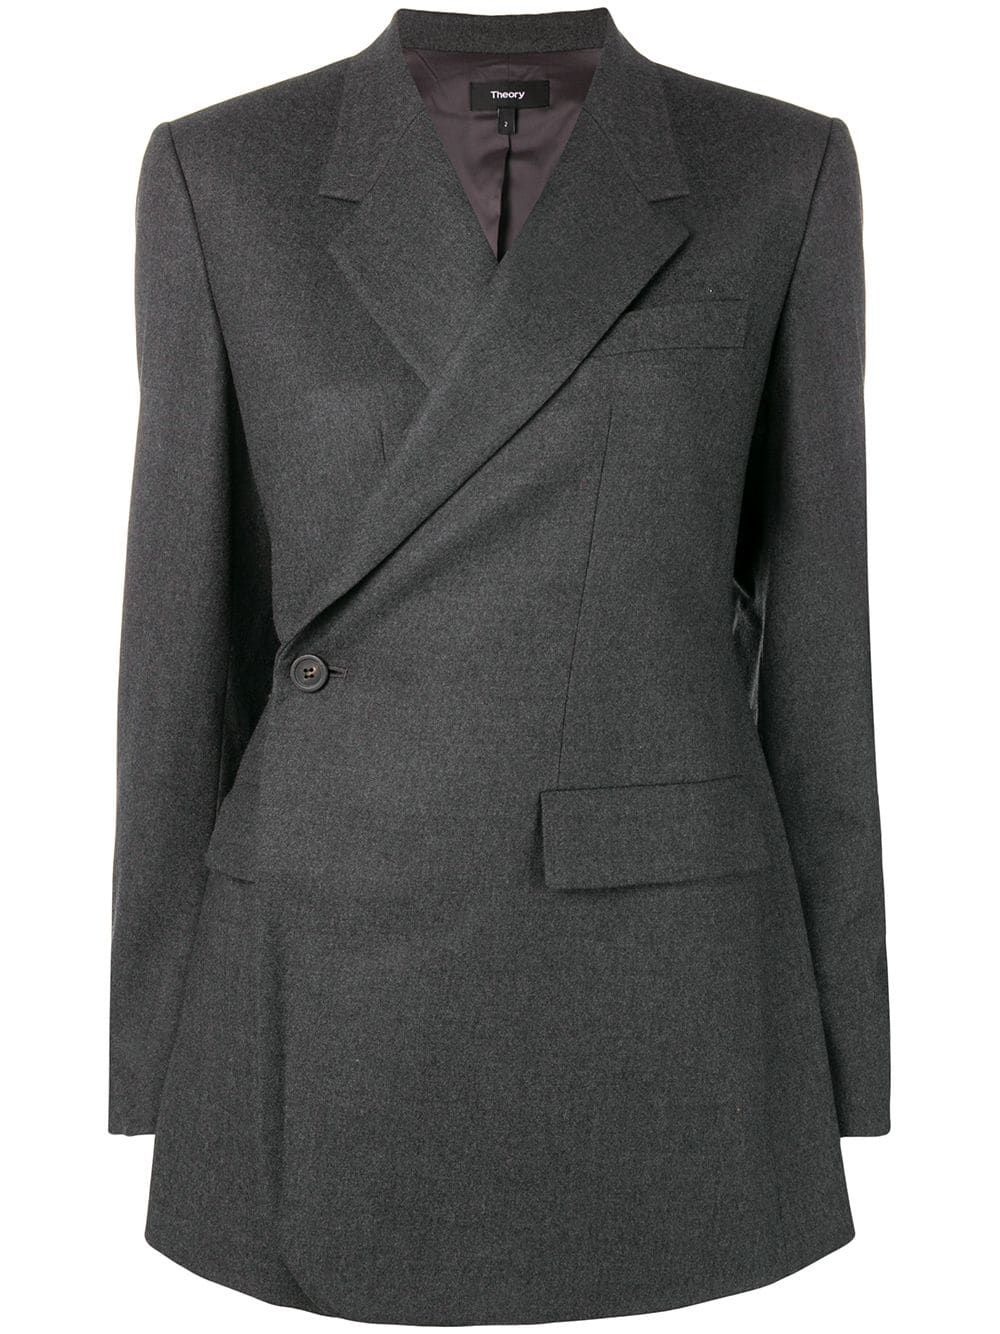 6515366373 THEORY THEORY SIDE BUTTON BLAZER - GREY. #theory #cloth   Theory in ...